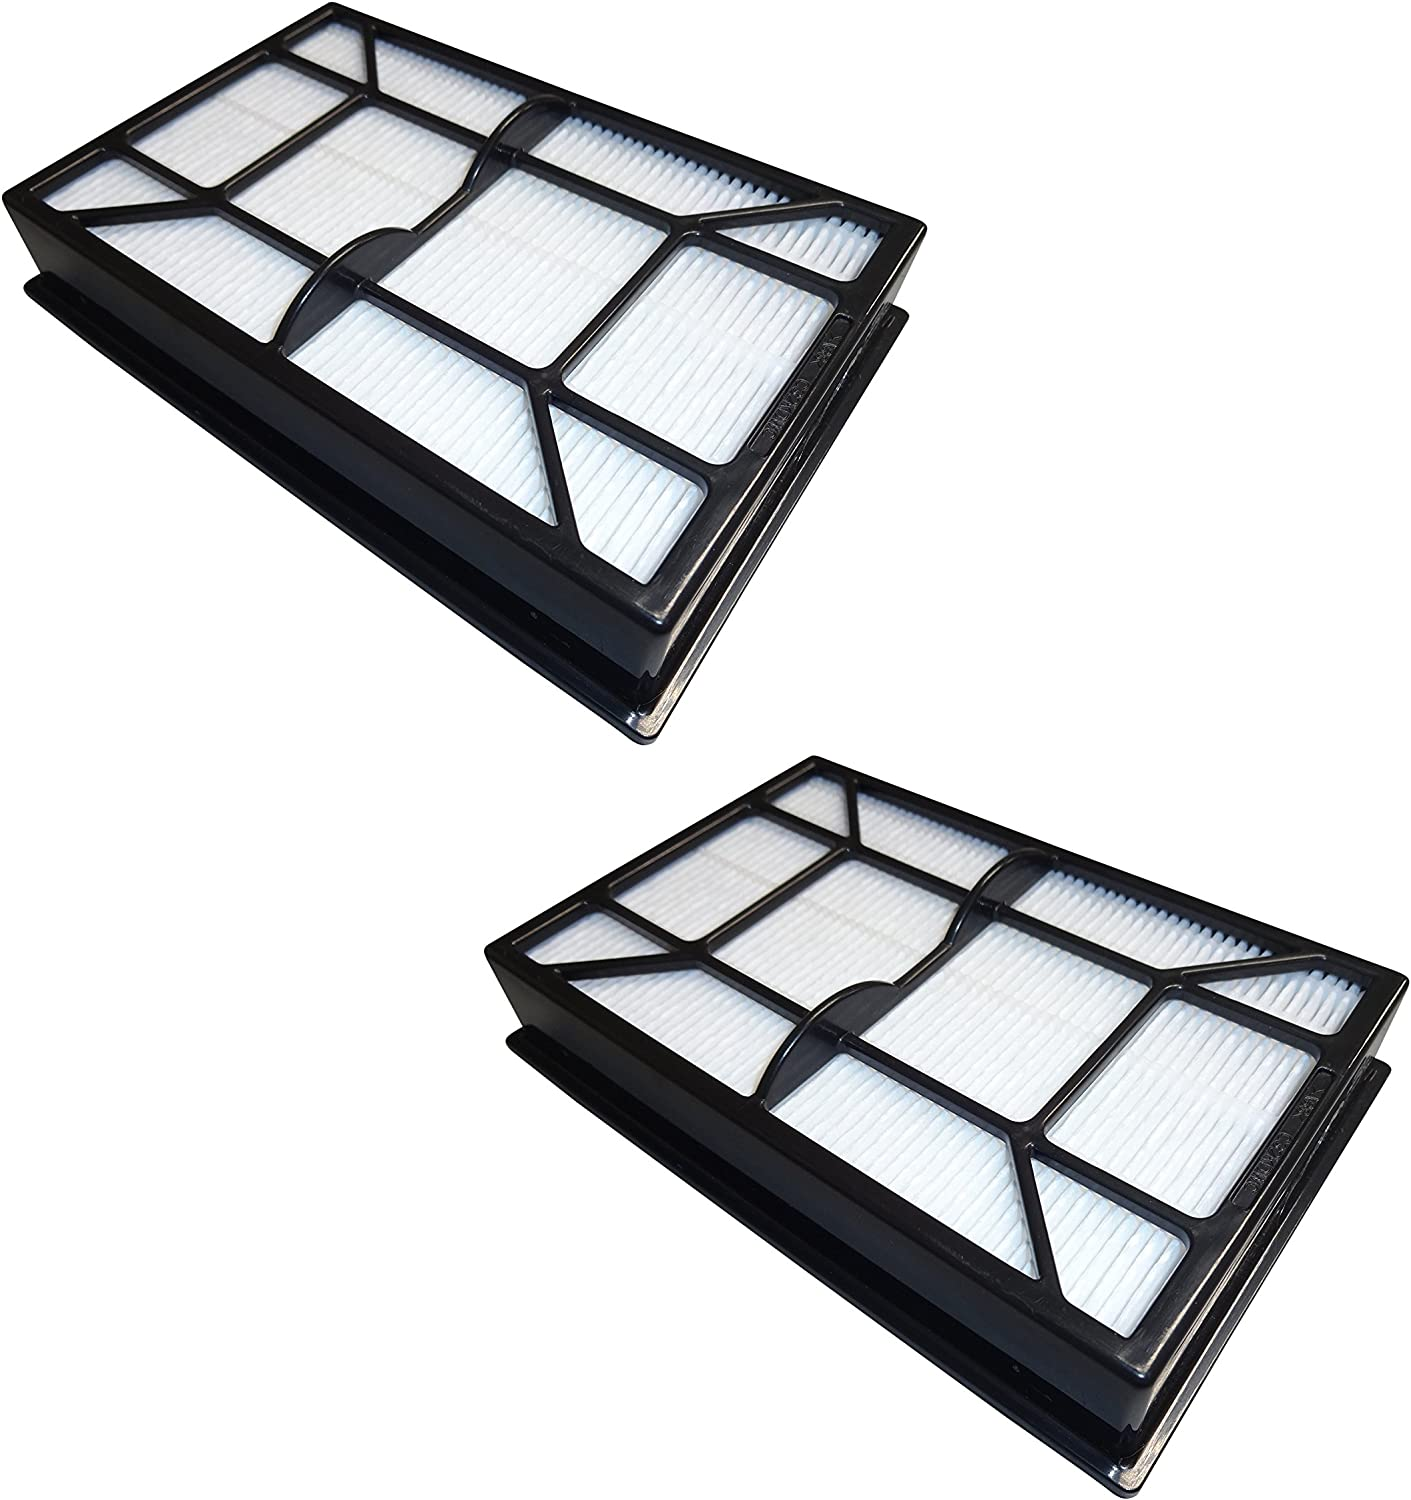 Best Vacuum Filter 2 Pack Compatible with Kenmore EF9 Filter Replaces 53296, 20-53296, 20-40195 Fits Pet Friendly 22614 Kenmore Canister 10065